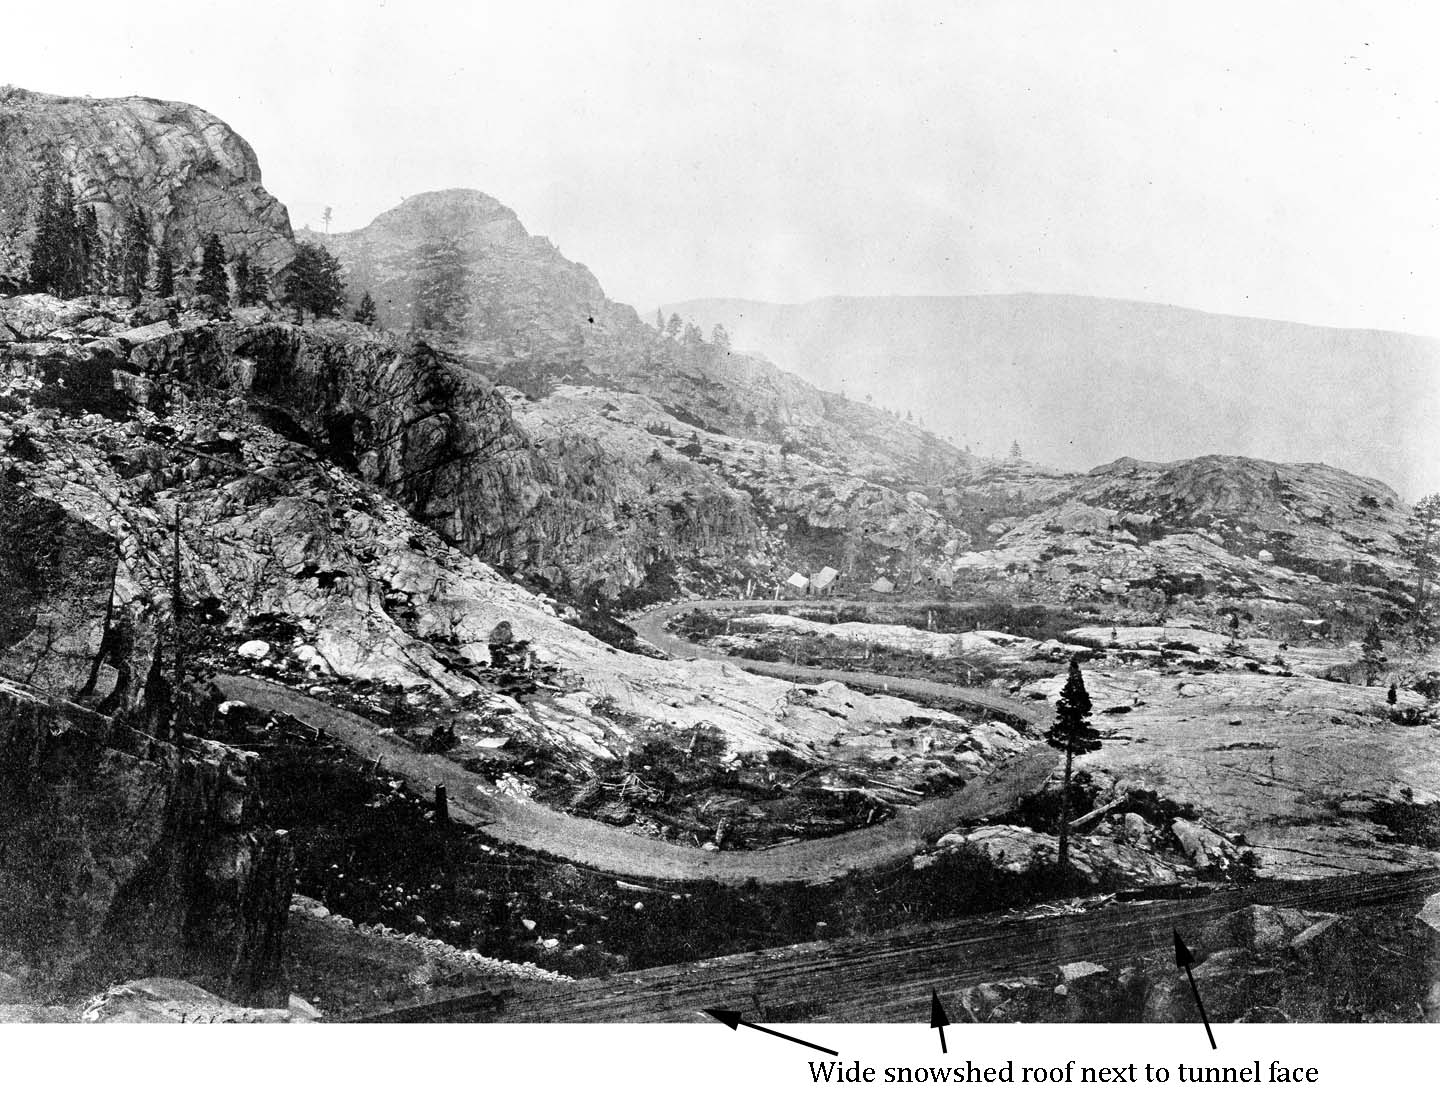 O'Sullivan 53 Donner Lake Pass in the Sierra Nevada Mountains of California - 40th Parallel - USGS